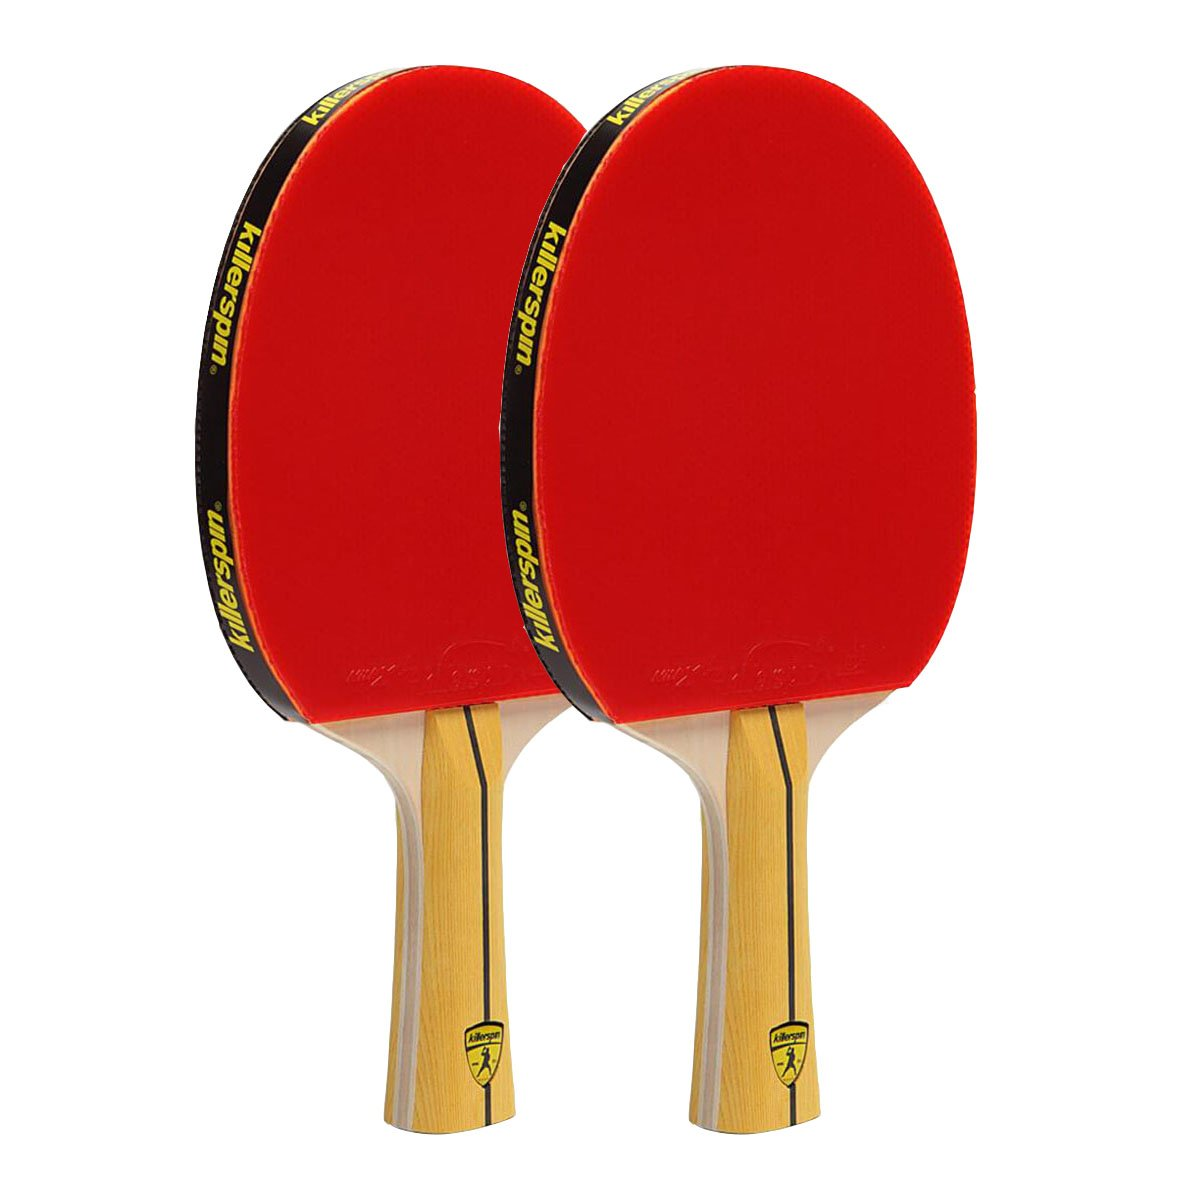 Killerspin JET400 Table Tennis Paddle (2 Rackets)